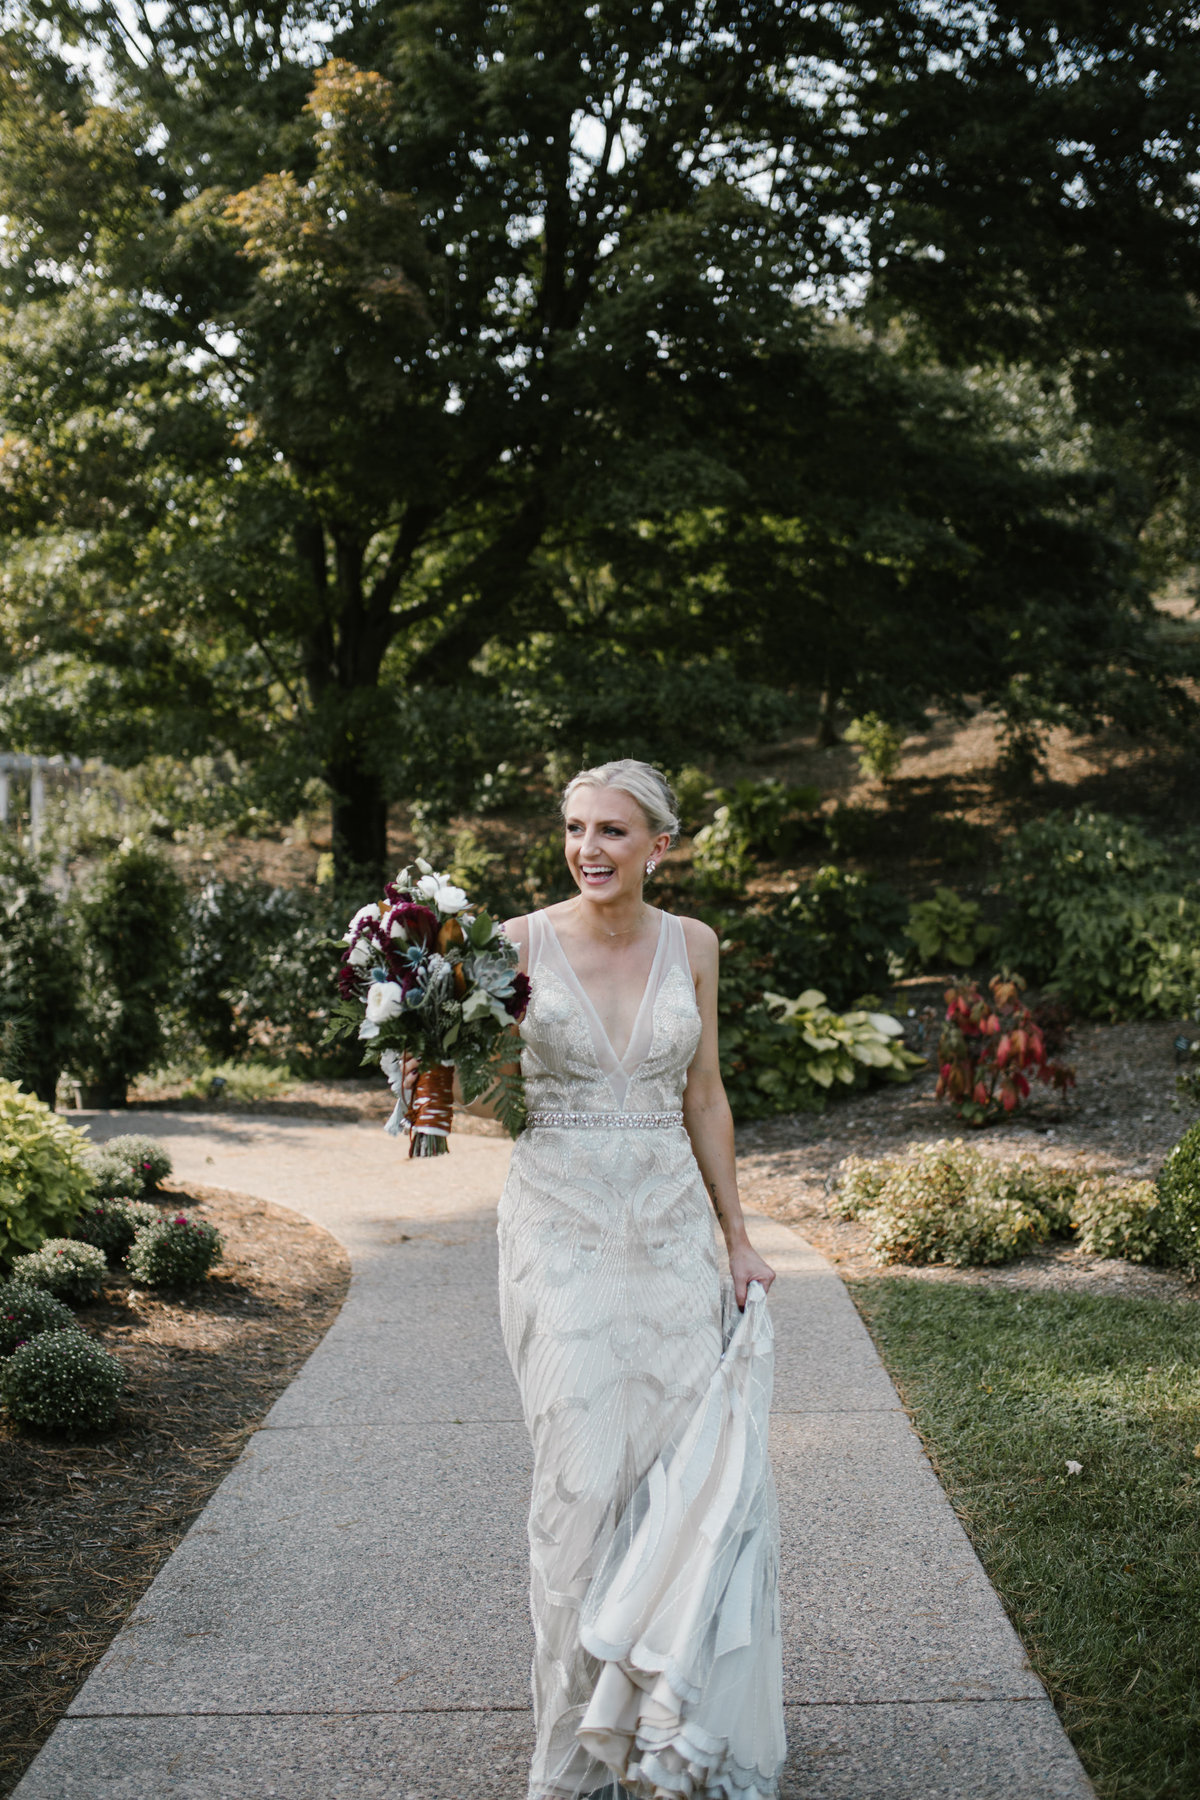 Unique pgh wedding photography134